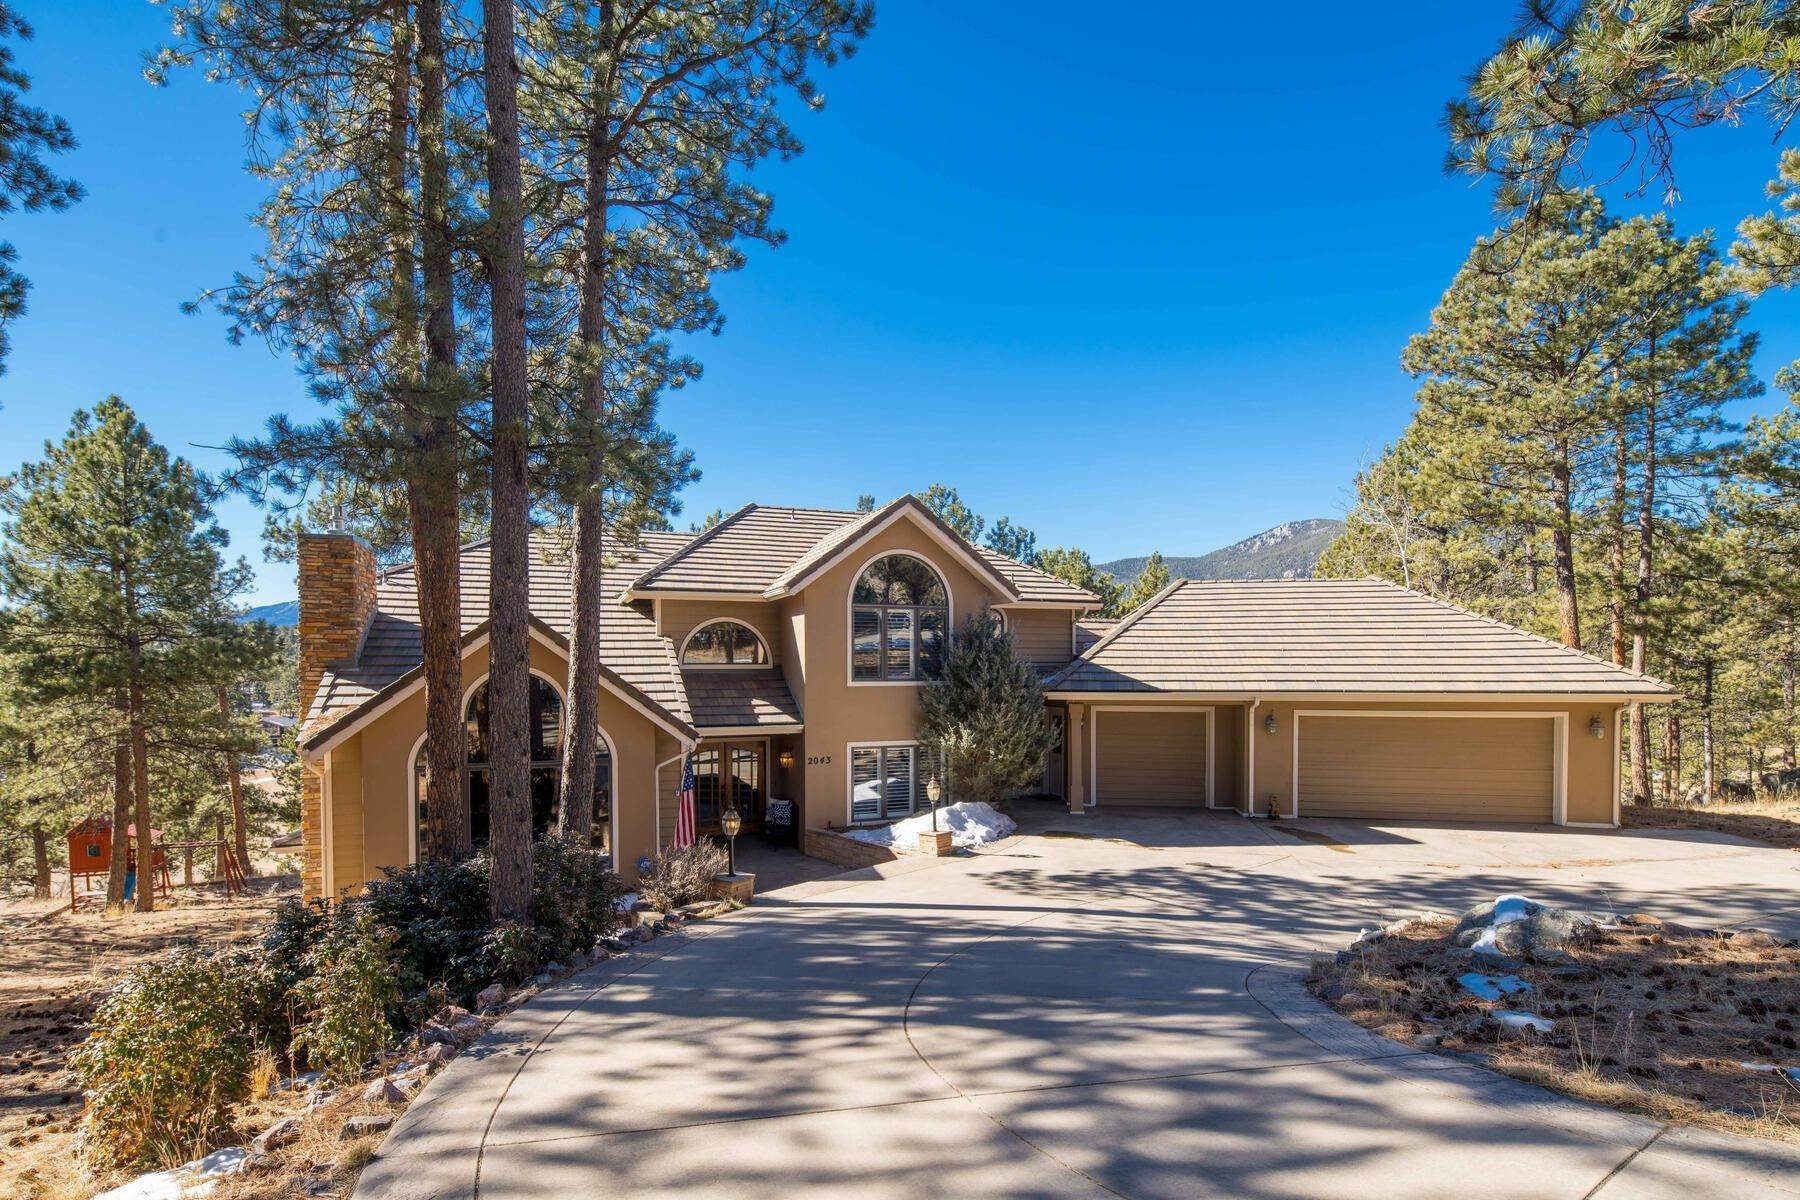 Single Family Homes for Sale at Premiere property in the Ridge at Hiwan 2043 Mammoth Court Evergreen, Colorado 80439 United States